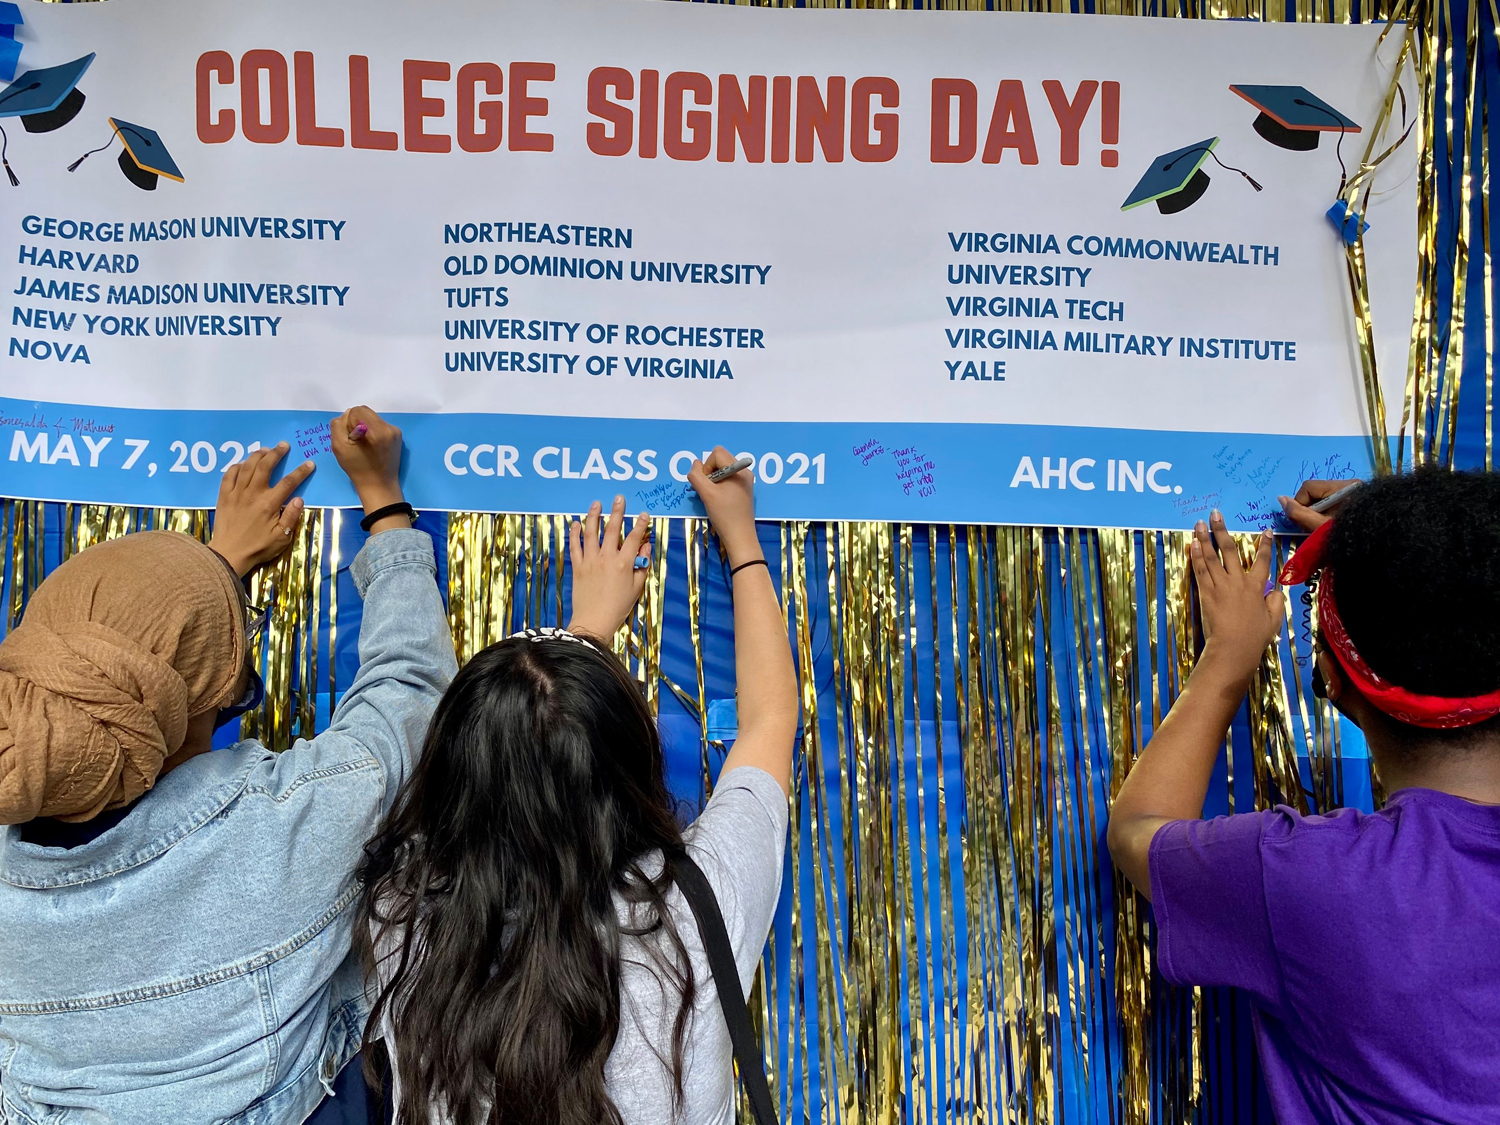 Students affix notes of thanks to the banner at the college-signing ceremony. (Photo by Celia Slater)